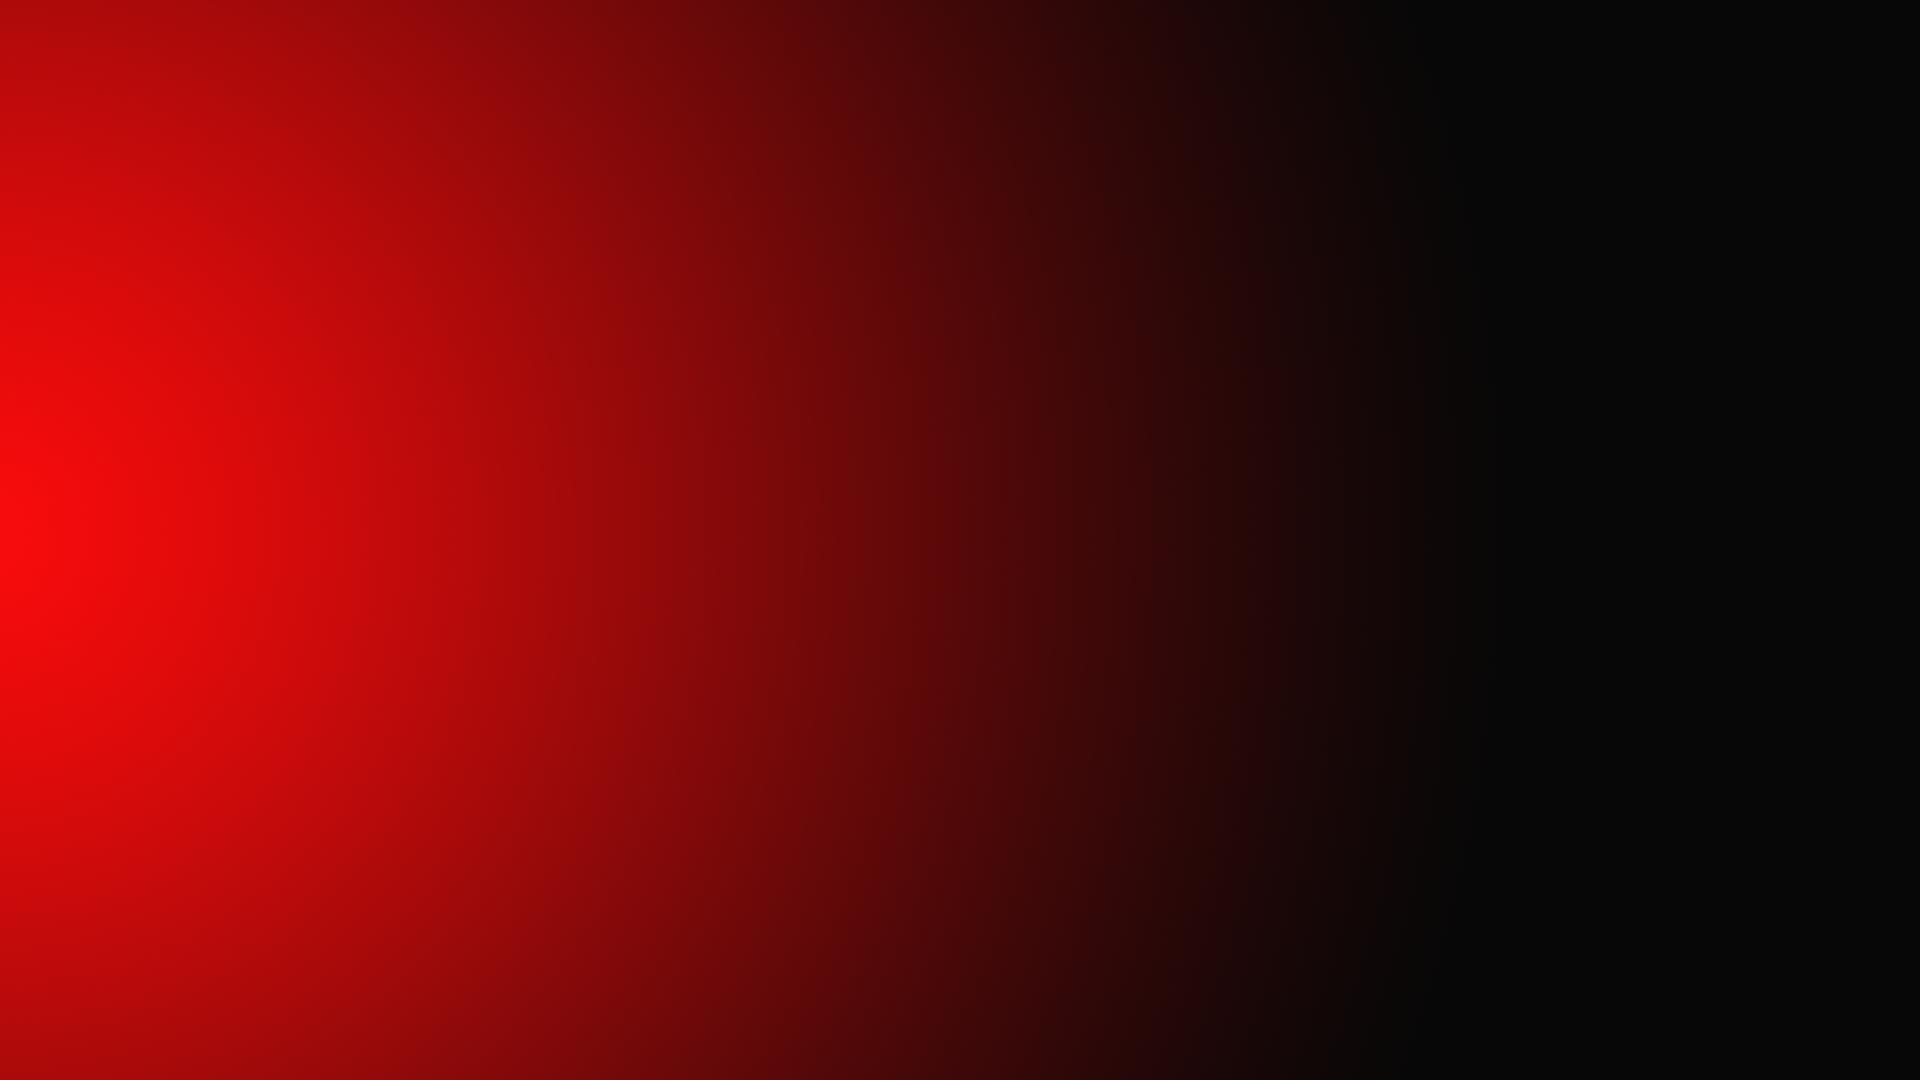 Black Red Love Wallpaper : Red And Black Backgrounds - Wallpaper cave